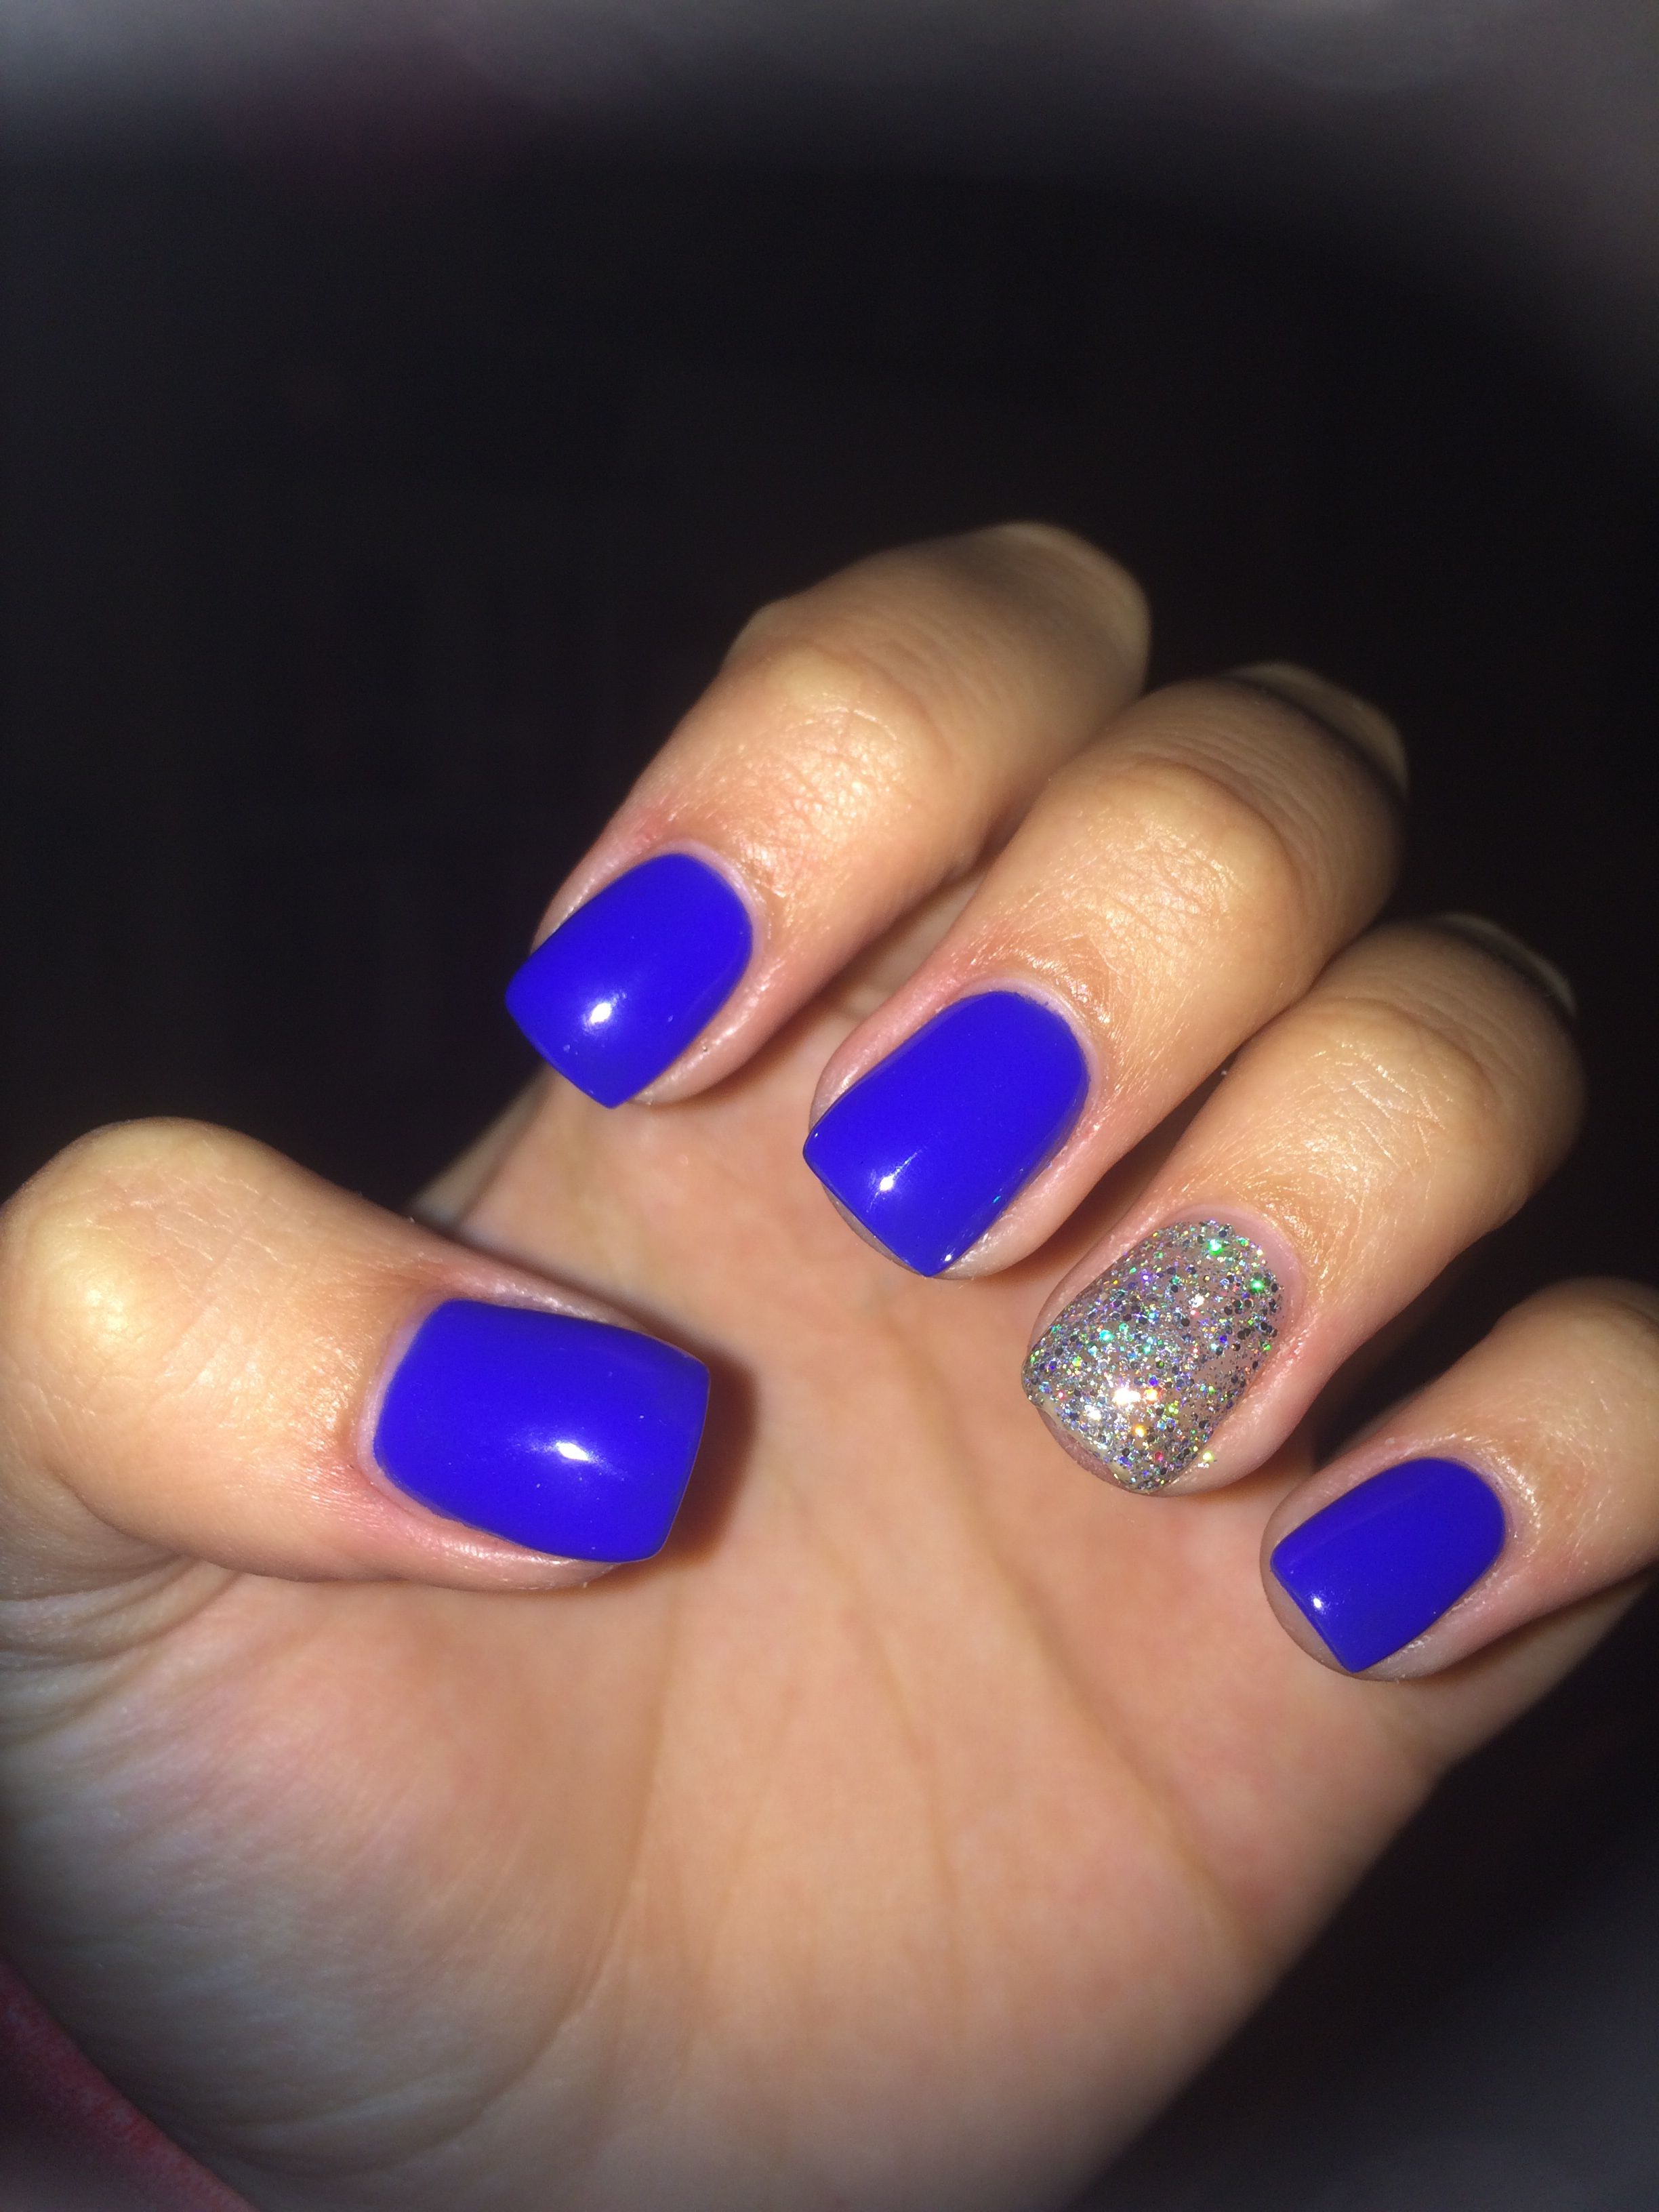 Short acrylic nails, royal blue with sparkle accent